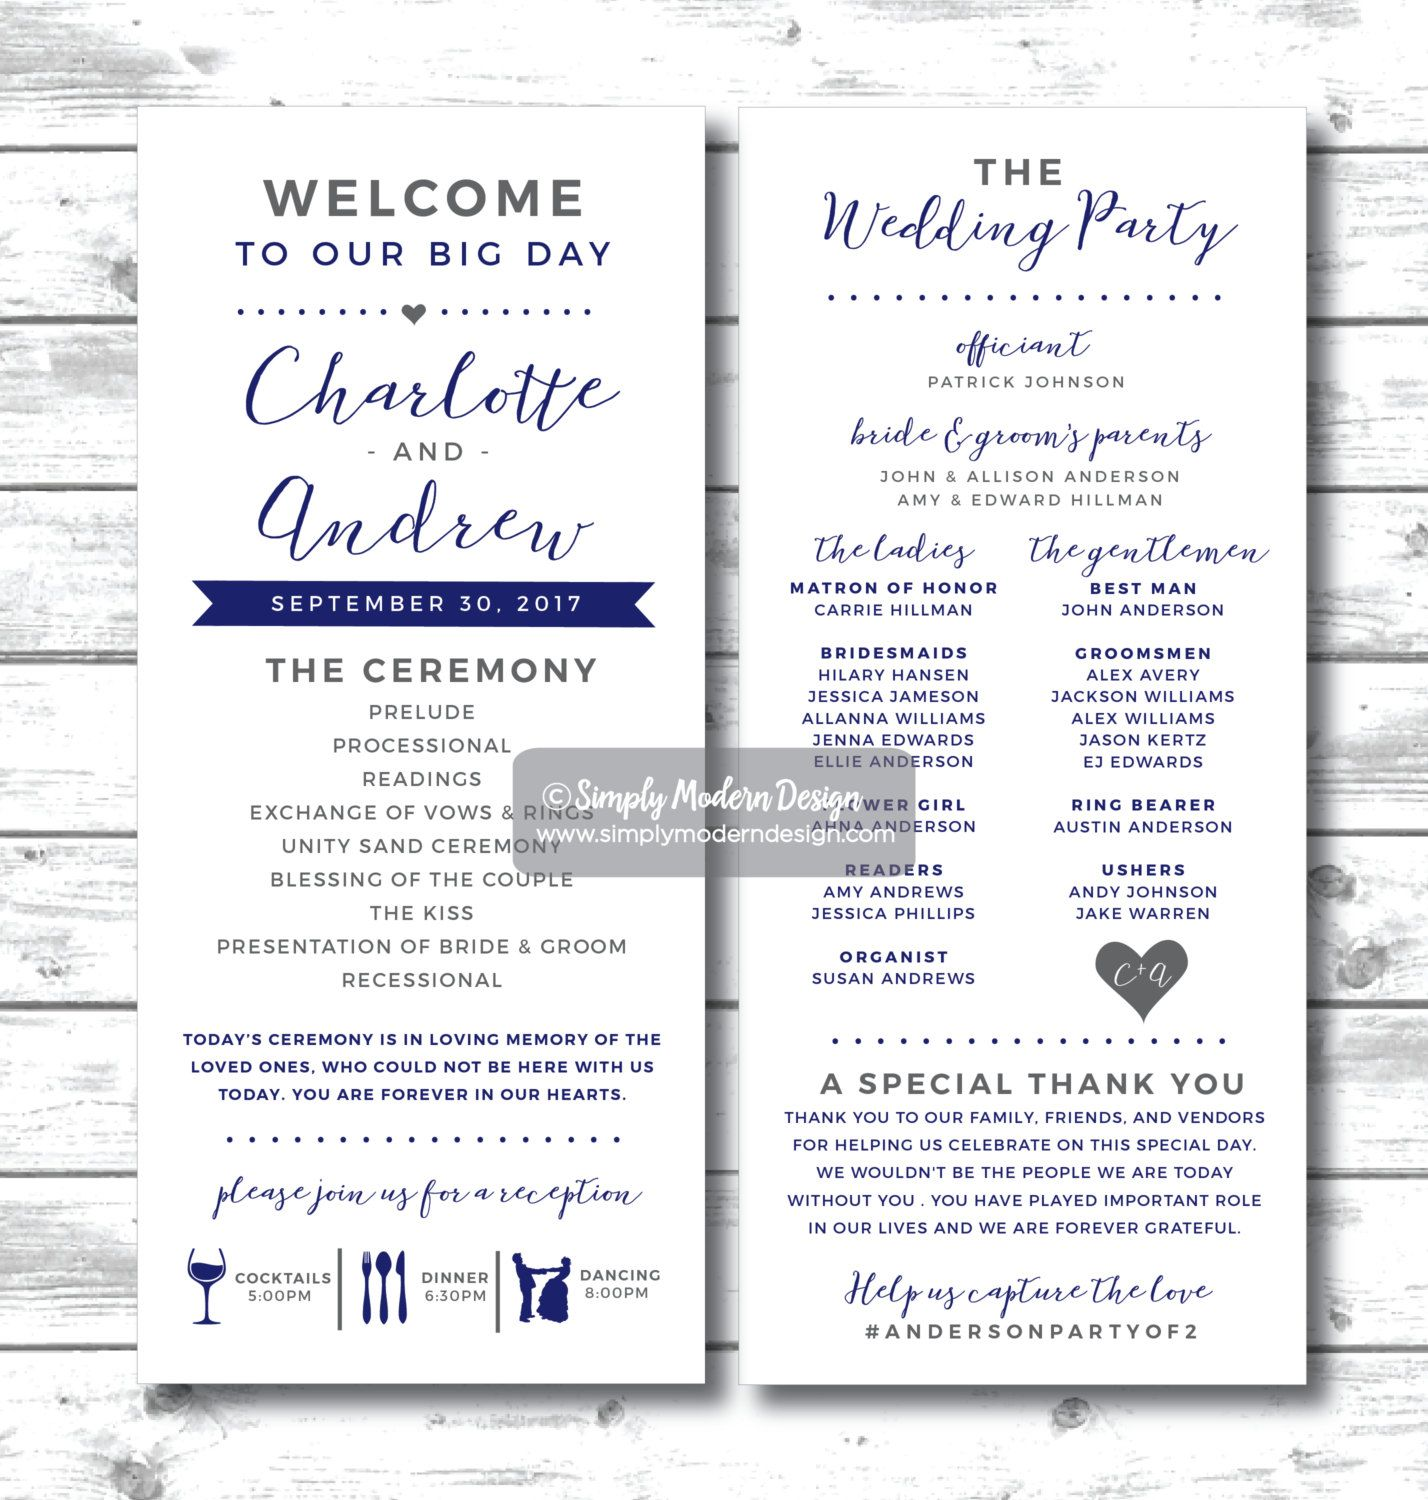 Ceremony And Reception Timeline: Wedding Program, Ceremony, Fun, Unique, Modern, Reception